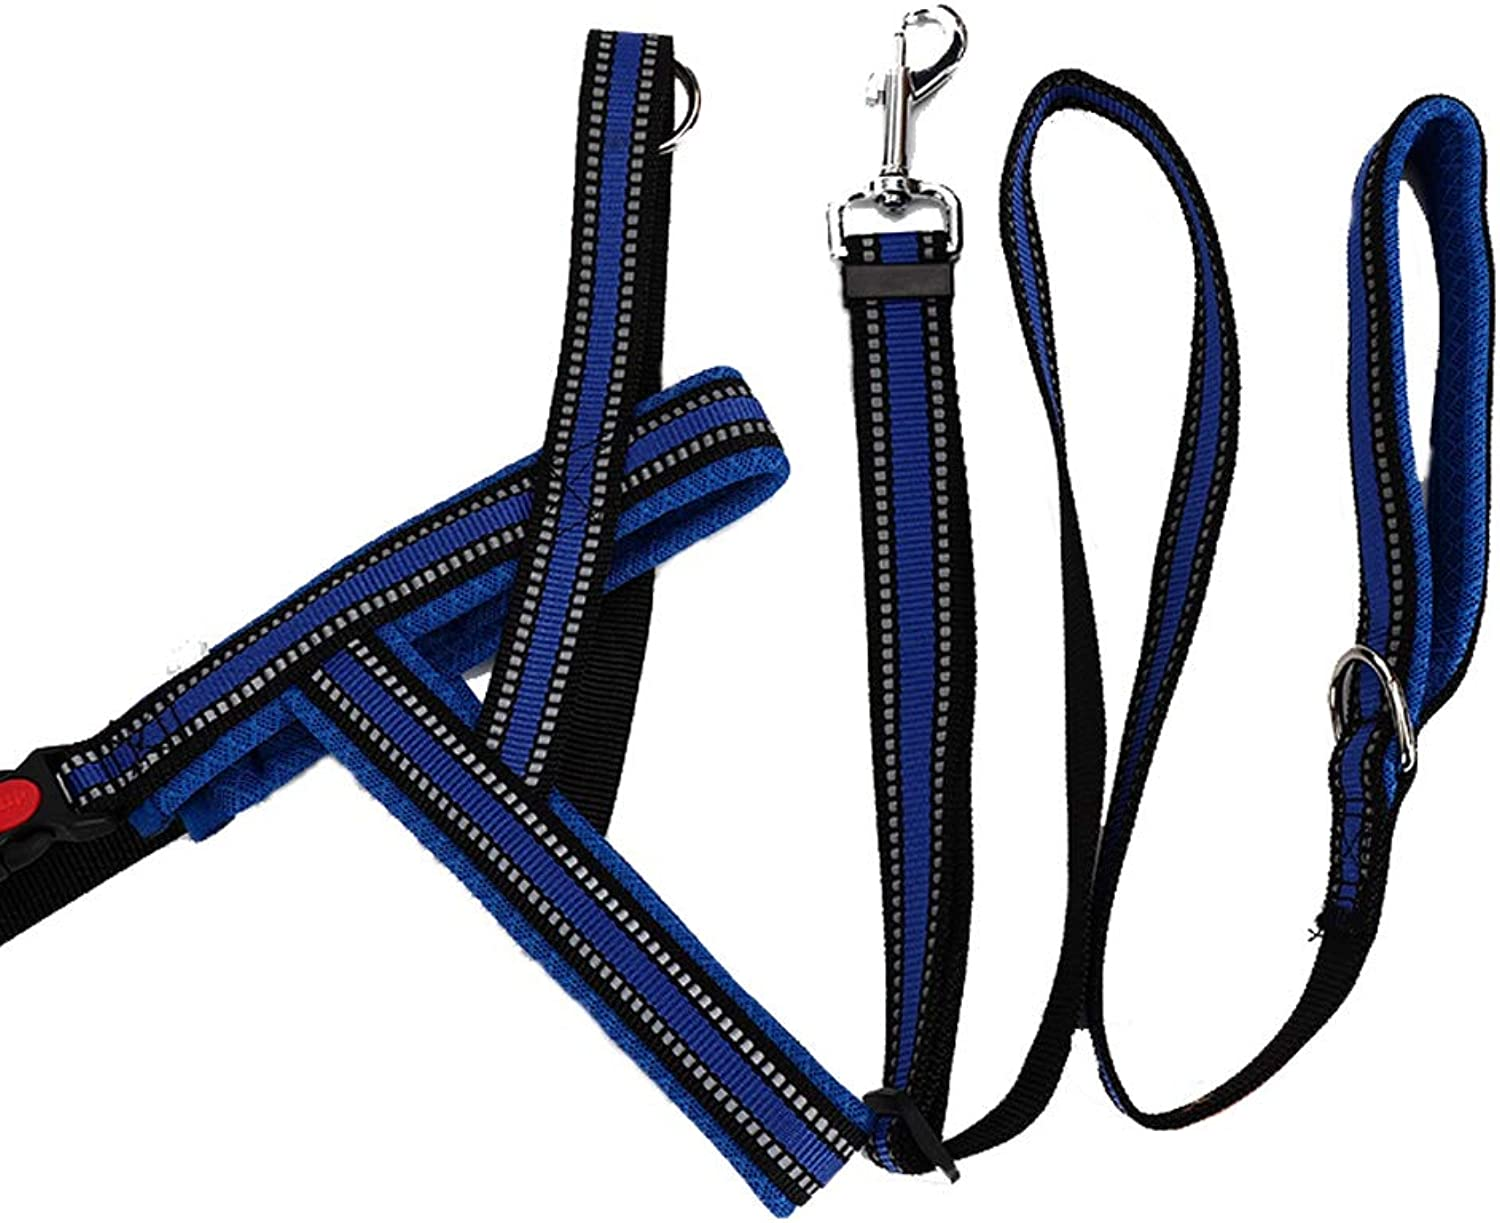 Pet Traction Rope,Adjustable Dog Harness, Reflective Cat Dog Harness Chest Strap Predection Dog Safe On Walks and Car Rides